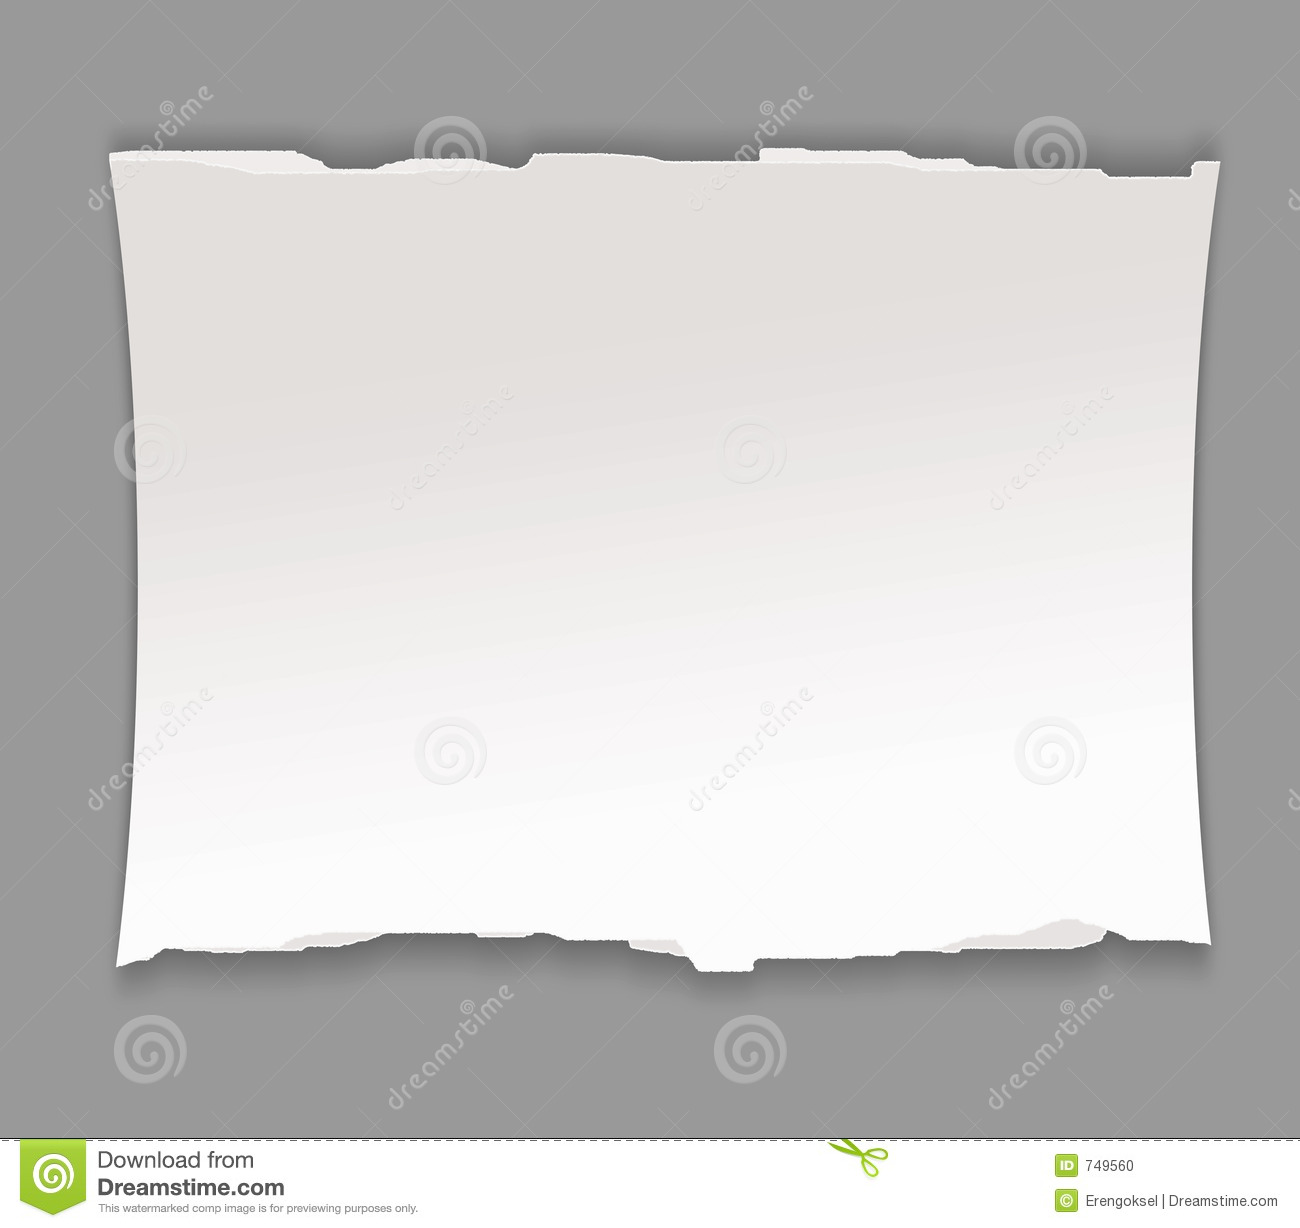 Paper clipart piece paper Paper Of Piece cps Clipart